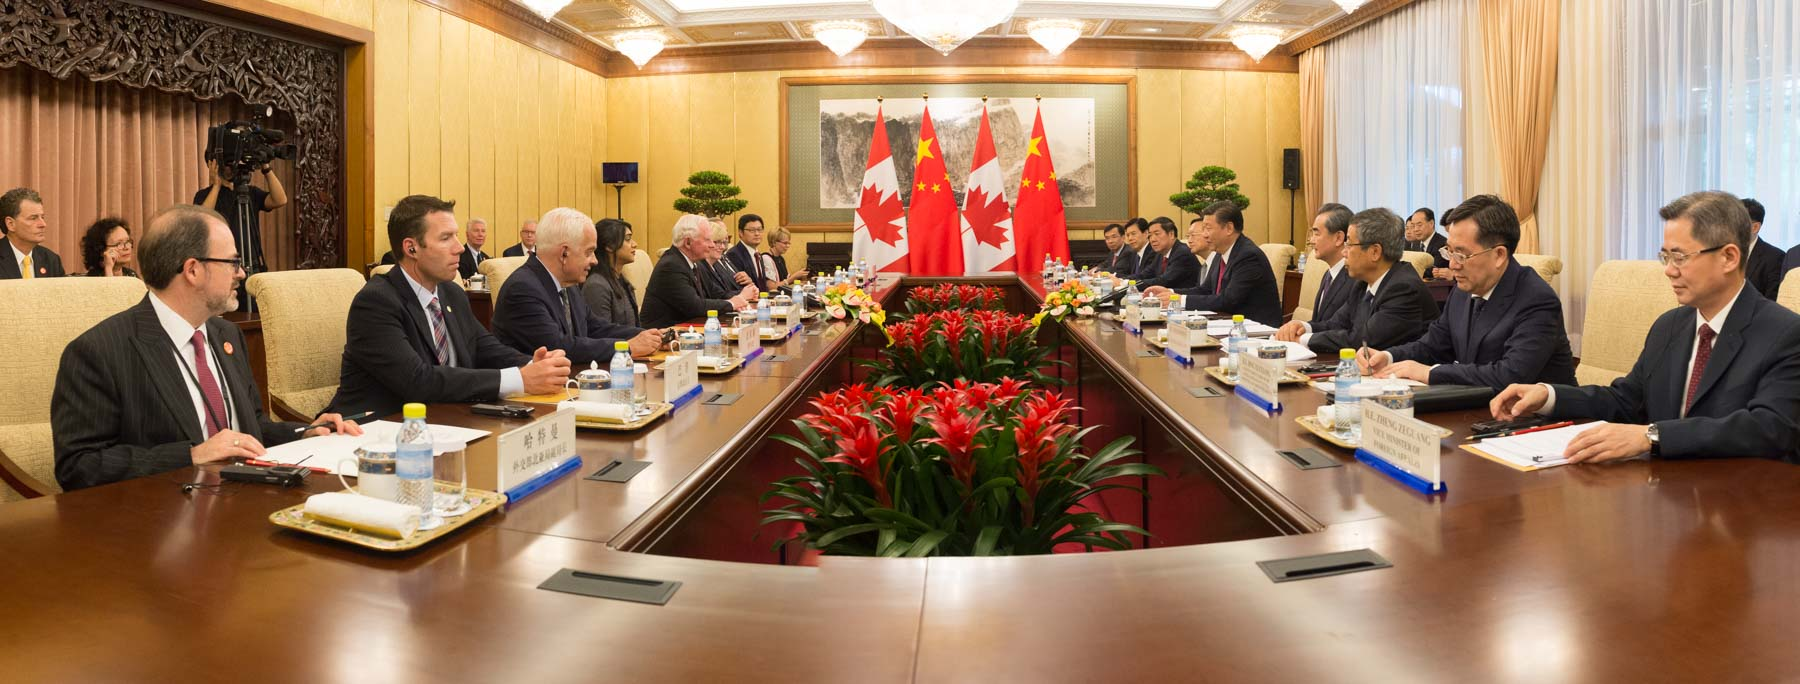 The purpose of their meeting was to reinforce Canada and China's long-standing relations.